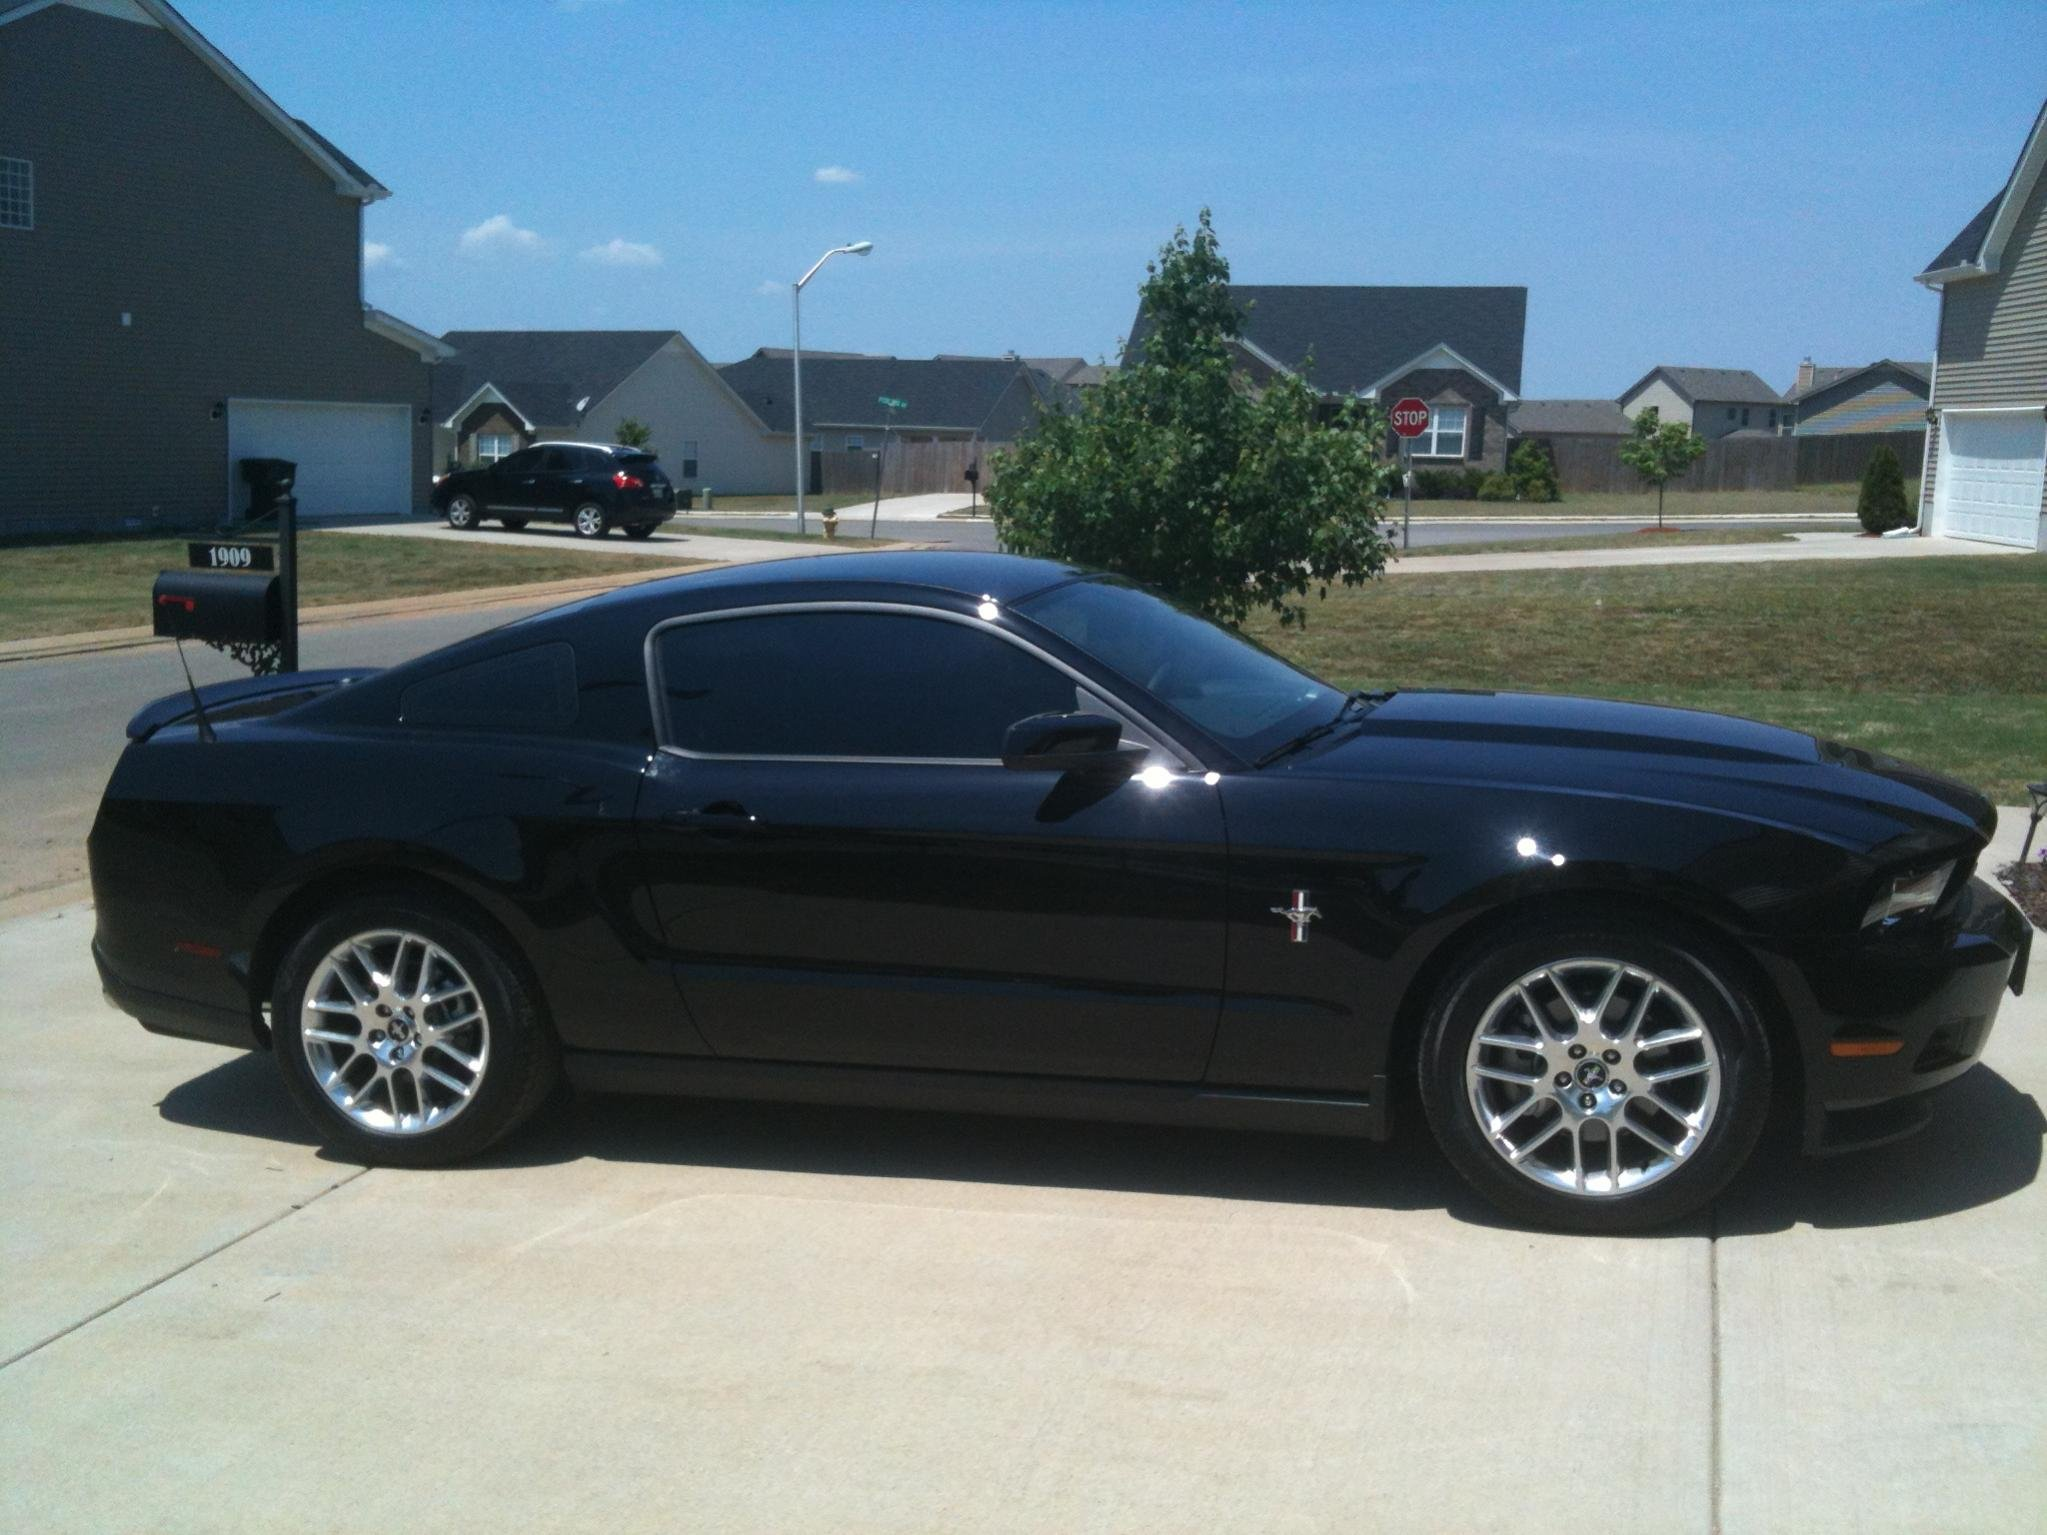 2012 Mustang V6 New to Site-tint.jpg